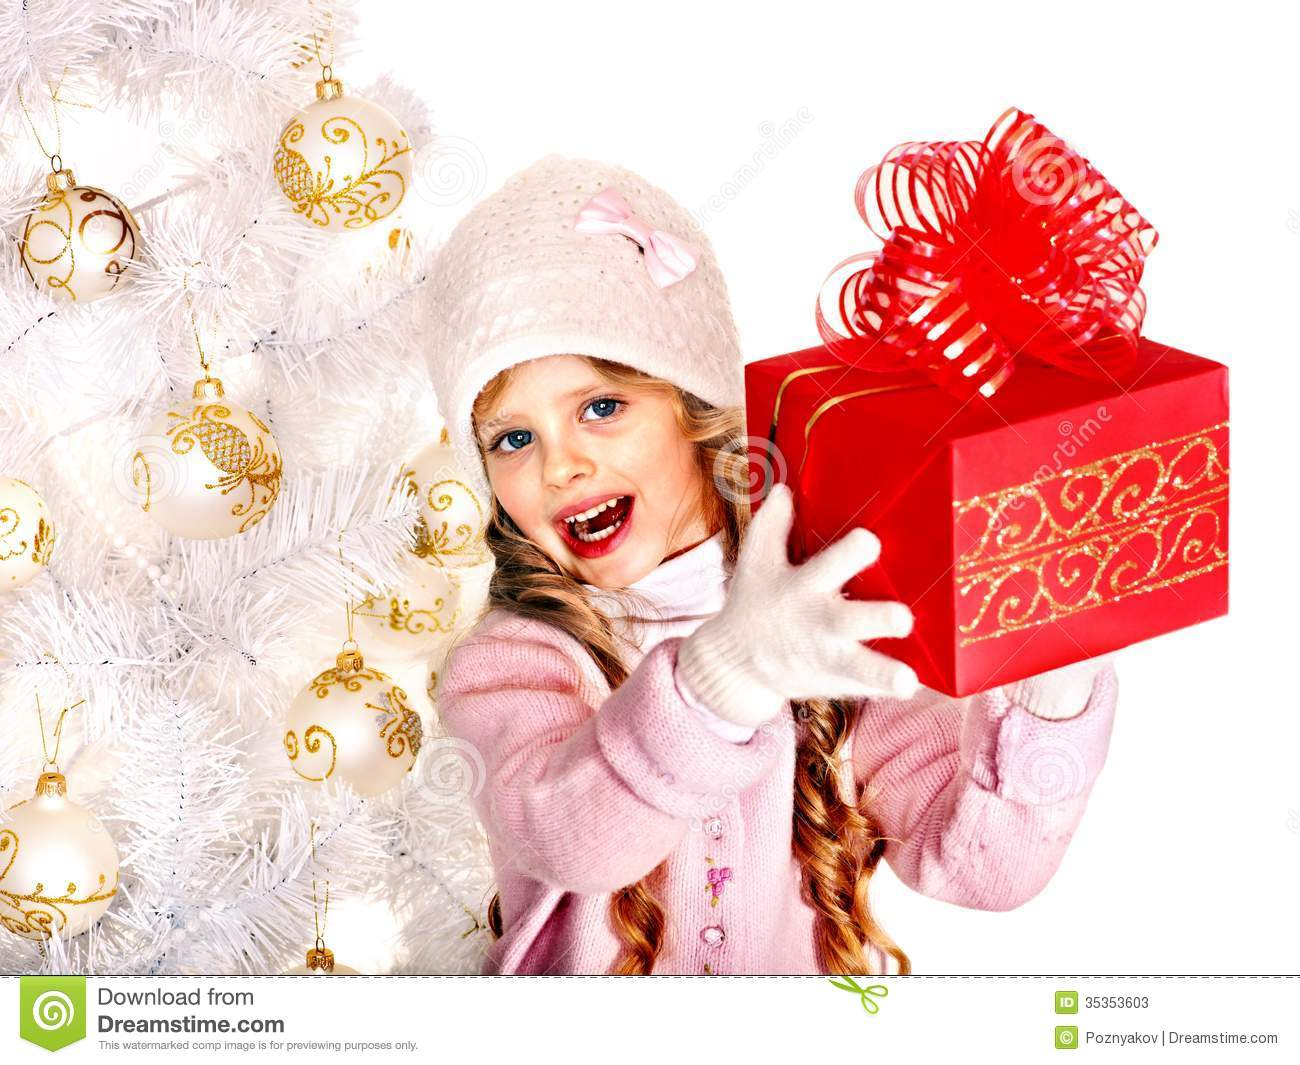 Child in hat and mittens holding red gift box near white Christmas tree.